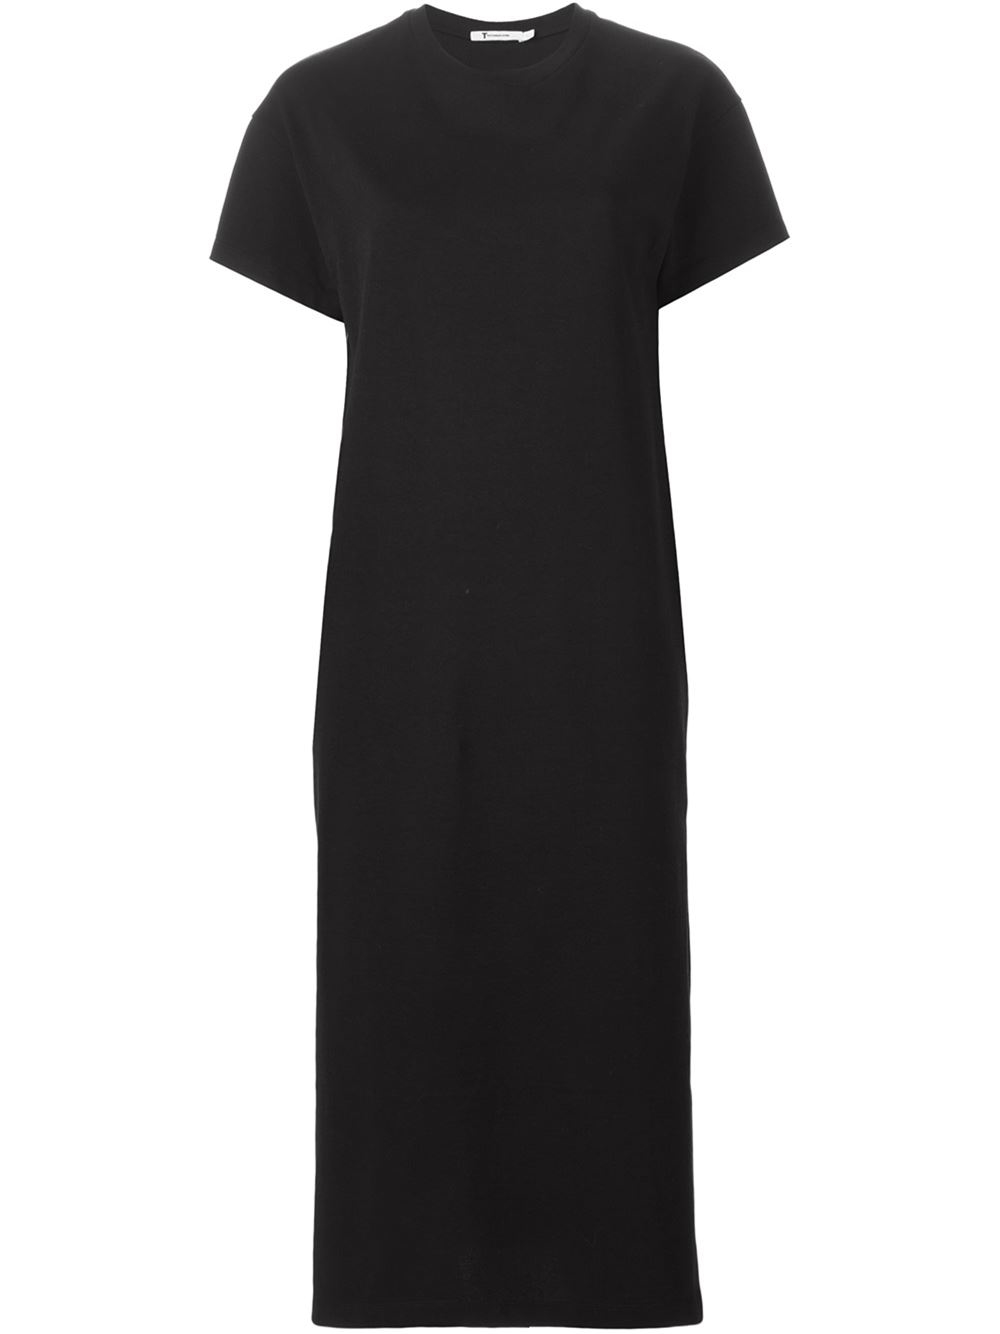 Black t shirt jersey dress - Gallery Previously Sold At Farfetch Women S T Shirt Dresses